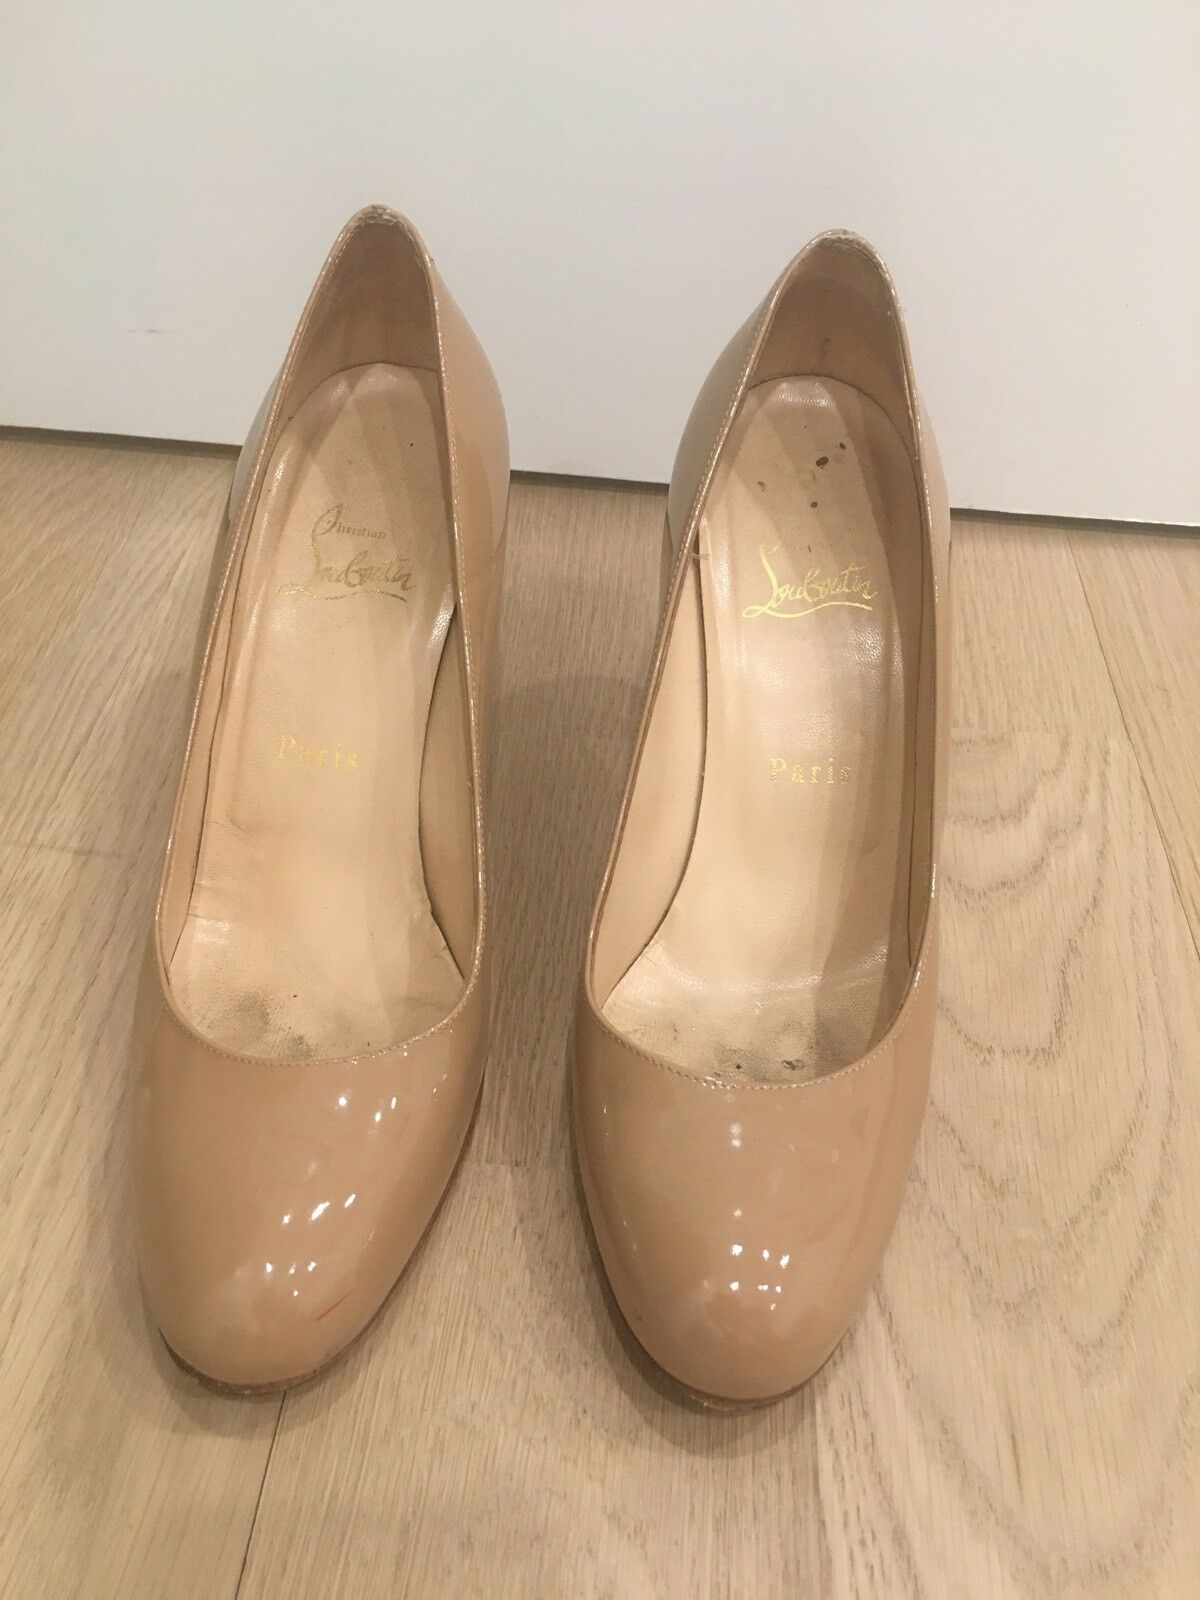 "Christian Louboutin Nude Patent Leather 4"" Heel.. Sz 38.5"